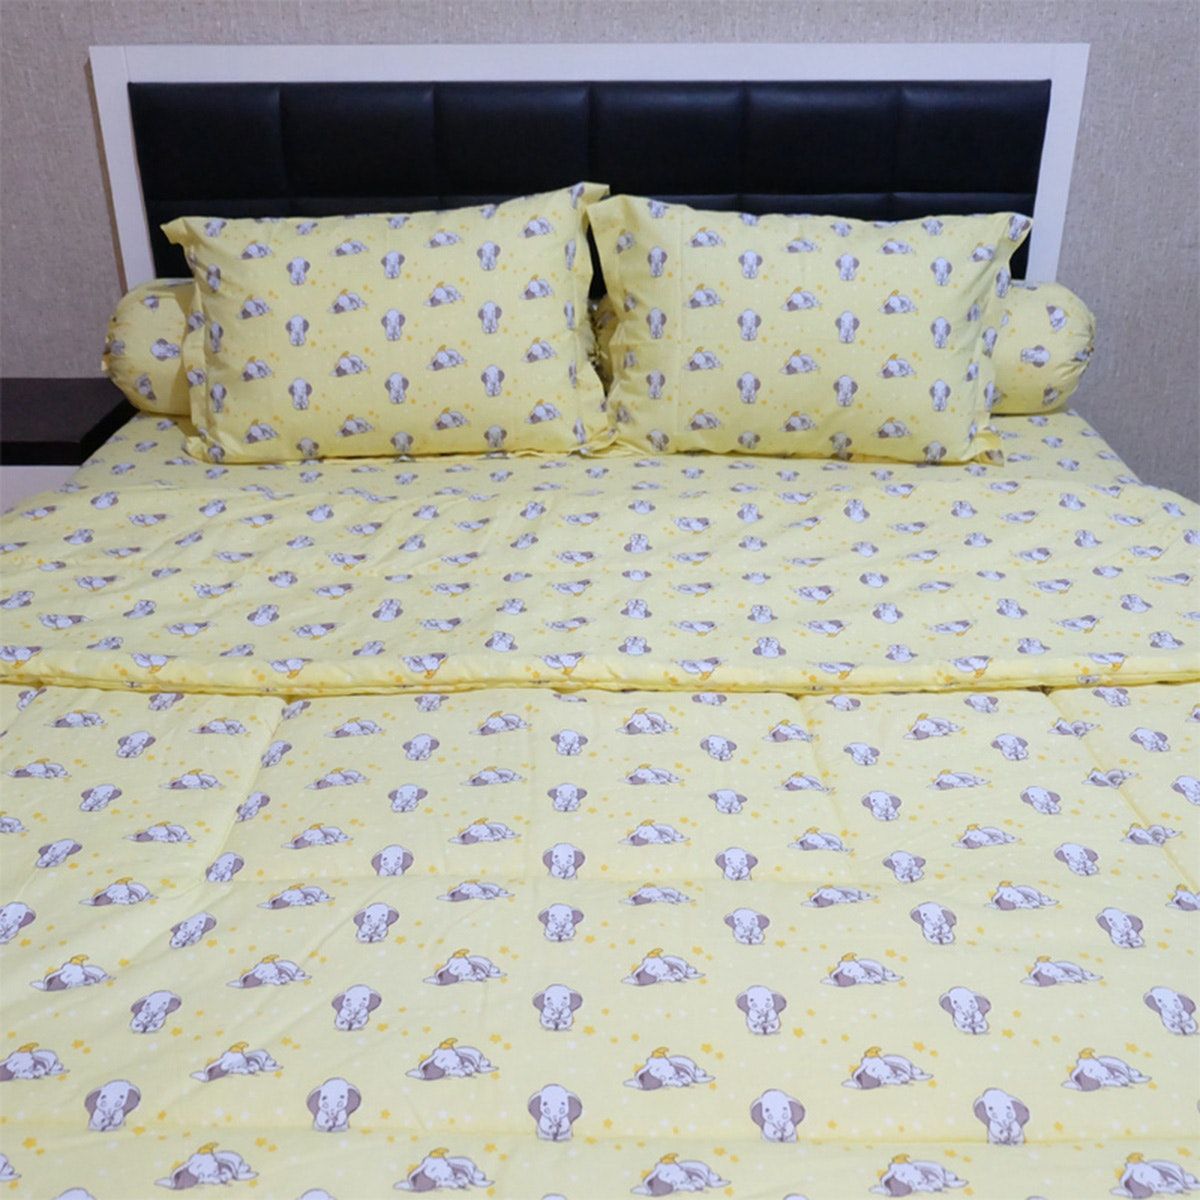 Sleep Buddy Set Sprei Dan Bed Cover Sleepy Dumbo Cvc 200x200x30